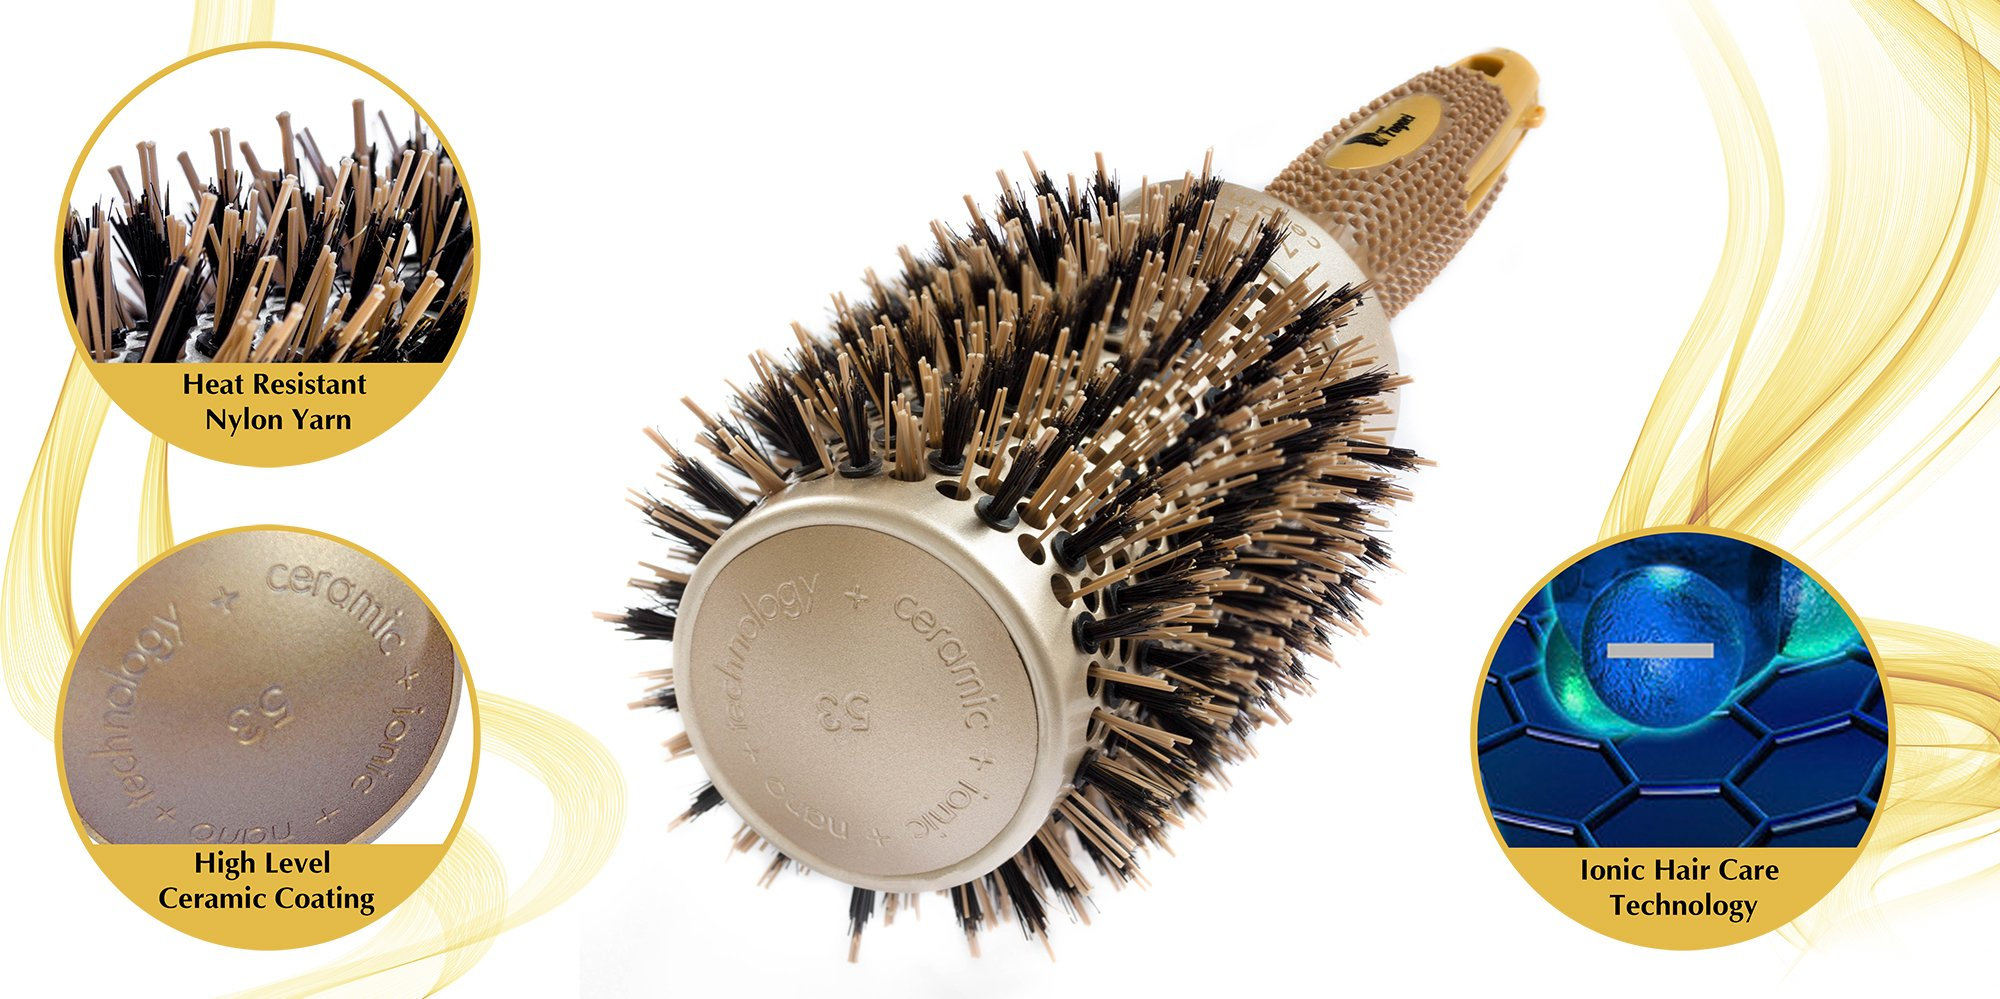 Fagaci Round Brush for Blow Drying with Natural Boar Bristle, Professional Round Hair Brush Nano Technology Ceramic + Ionic for Hair Styling, Drying, Healthy Hair and Add Volume + 4 Styling Clips by Fagaci (Image #3)